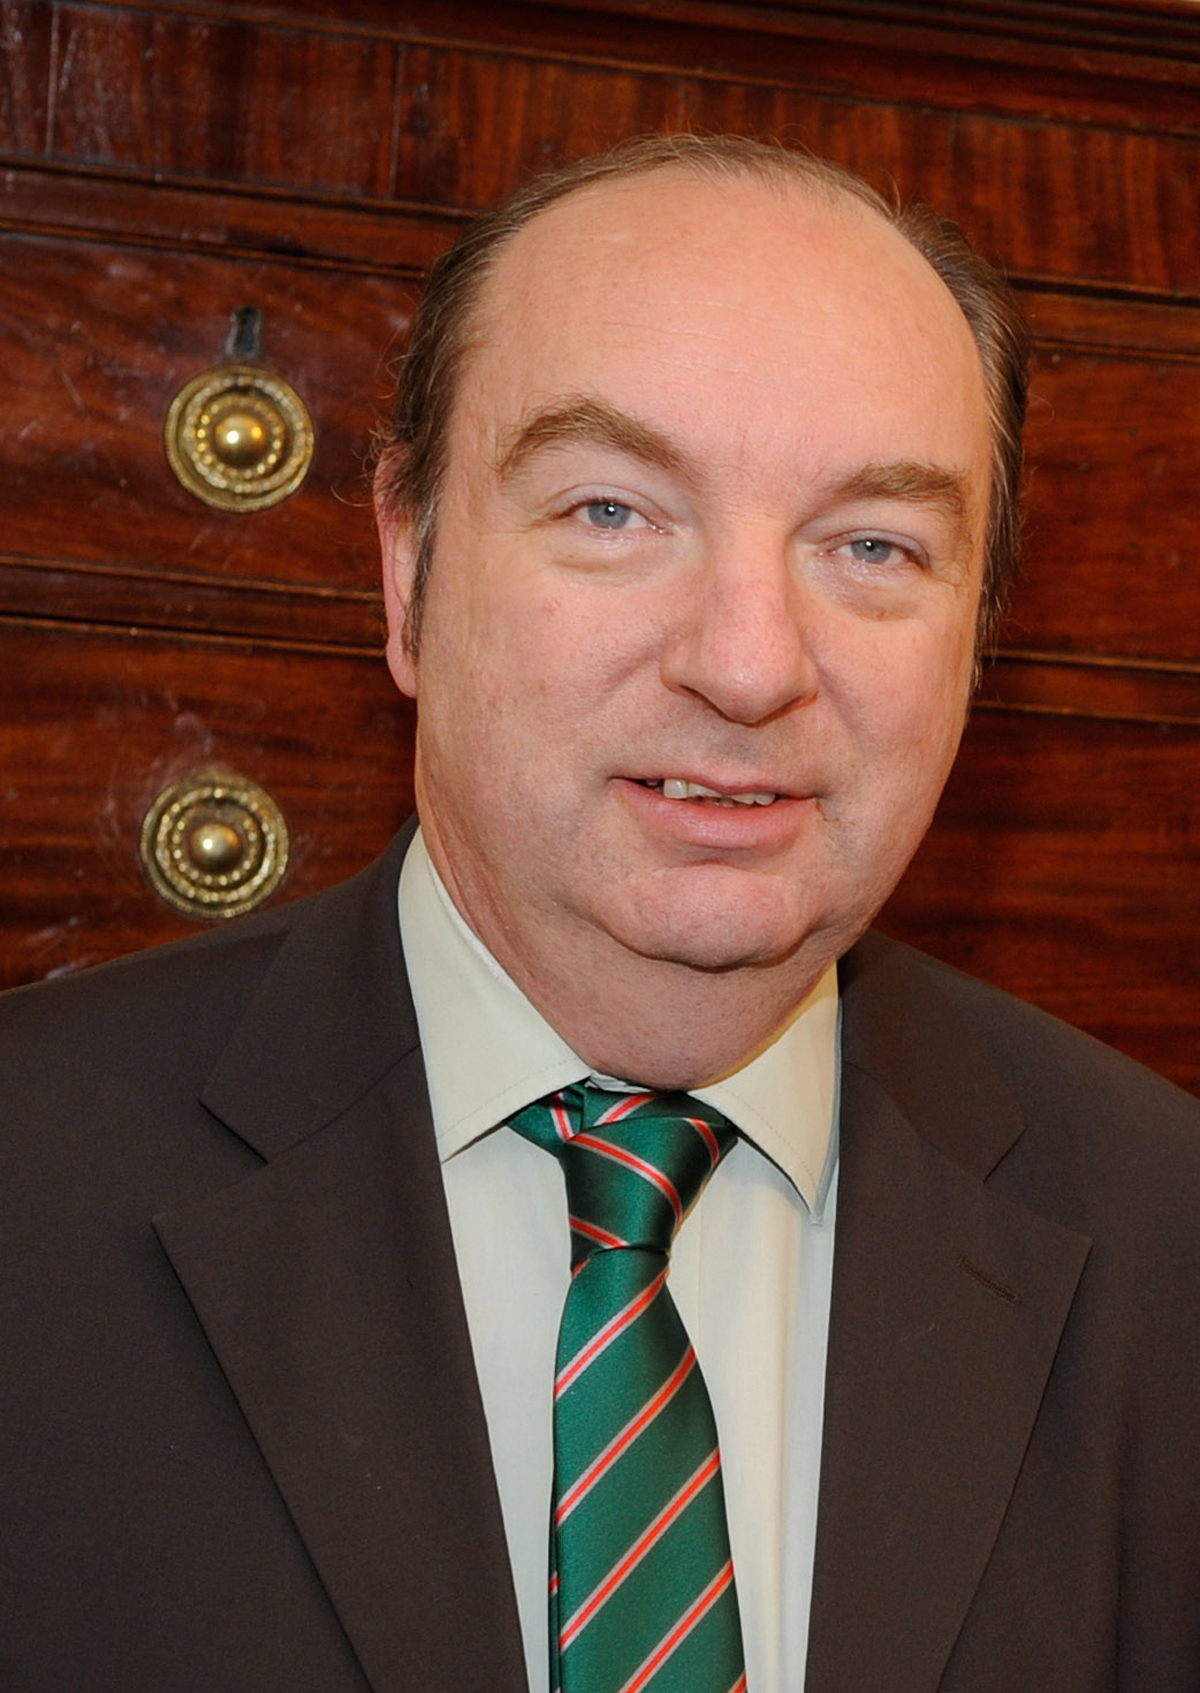 Lewes MP Norman Baker